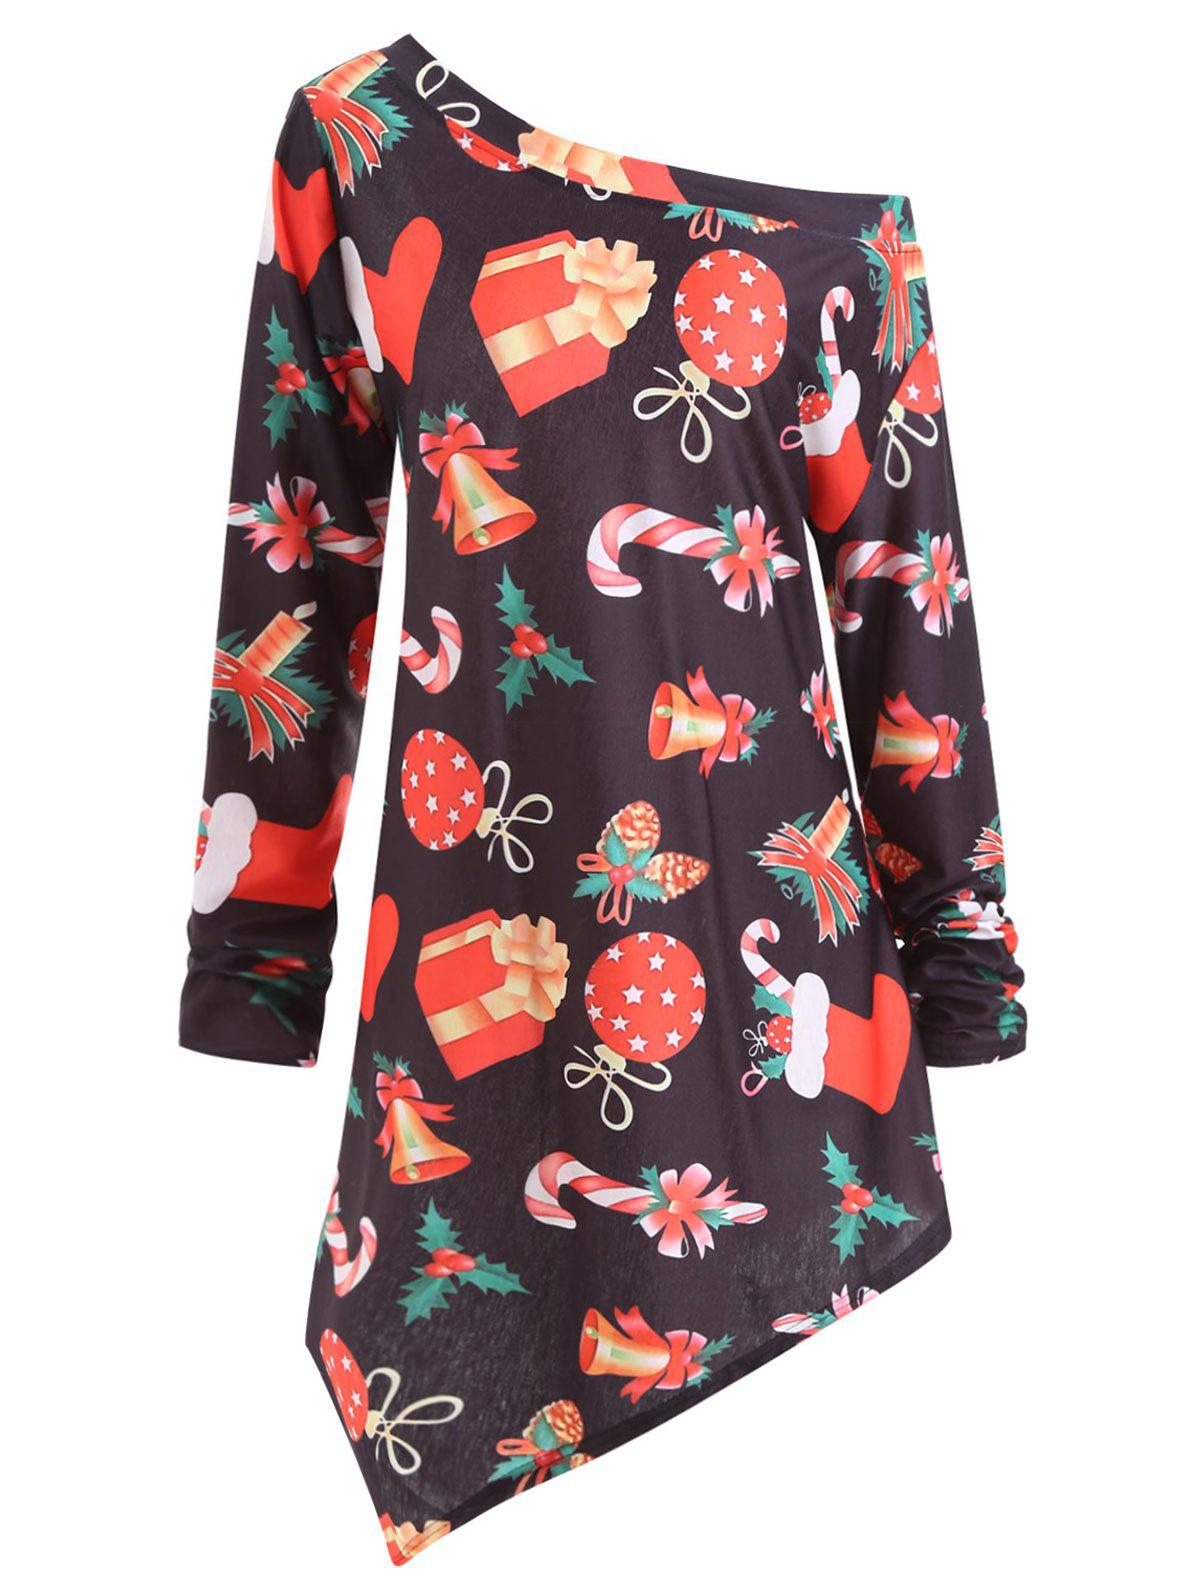 Shop Plus Size Christmas Gifts Graphic Asymmetric Tunic Top